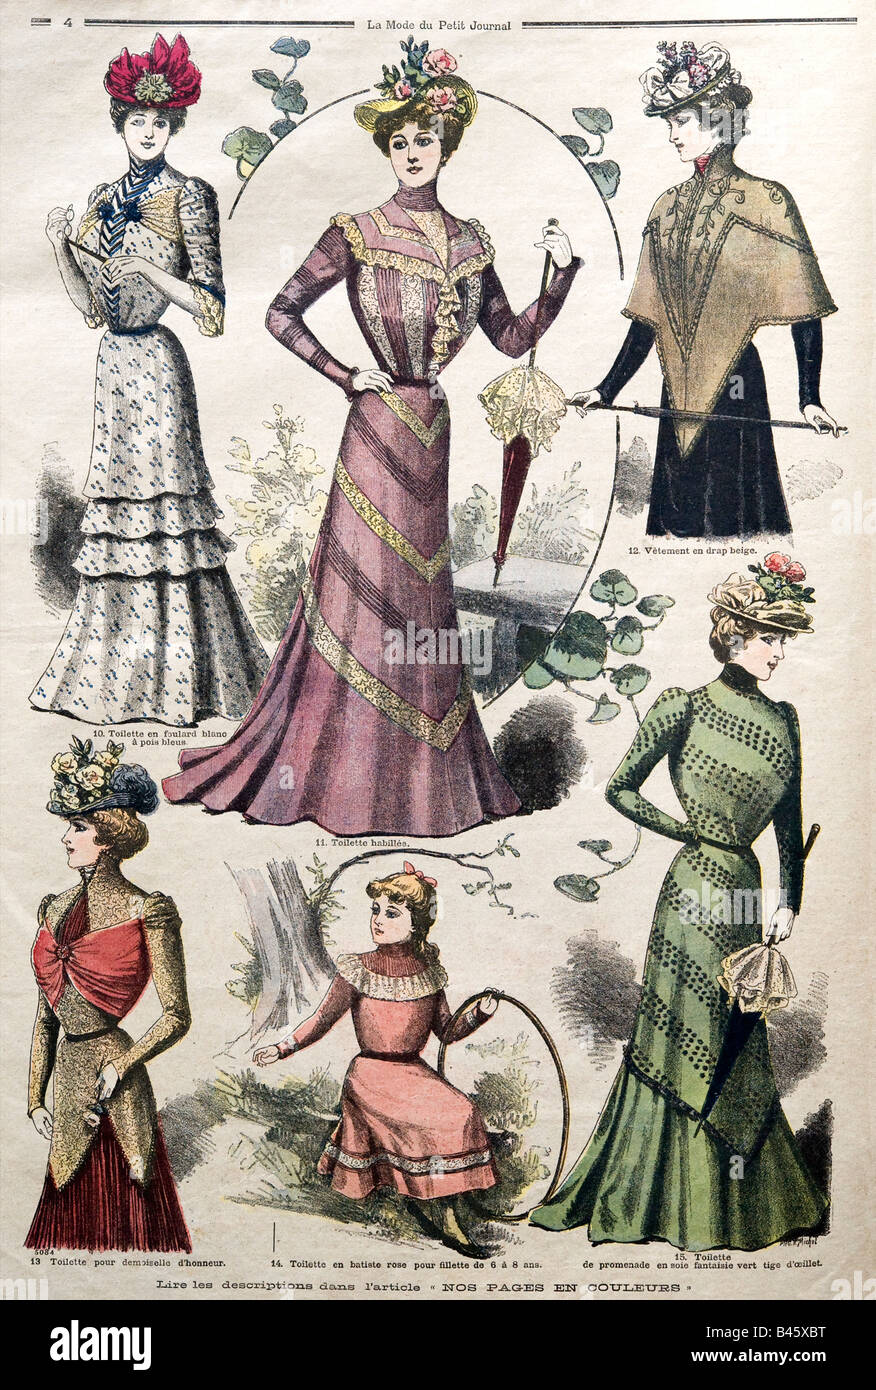 1890s French Ladies Fashion from La Mode du Petit Journal 1899 FOR EDITORIAL USE ONLY - Stock Image